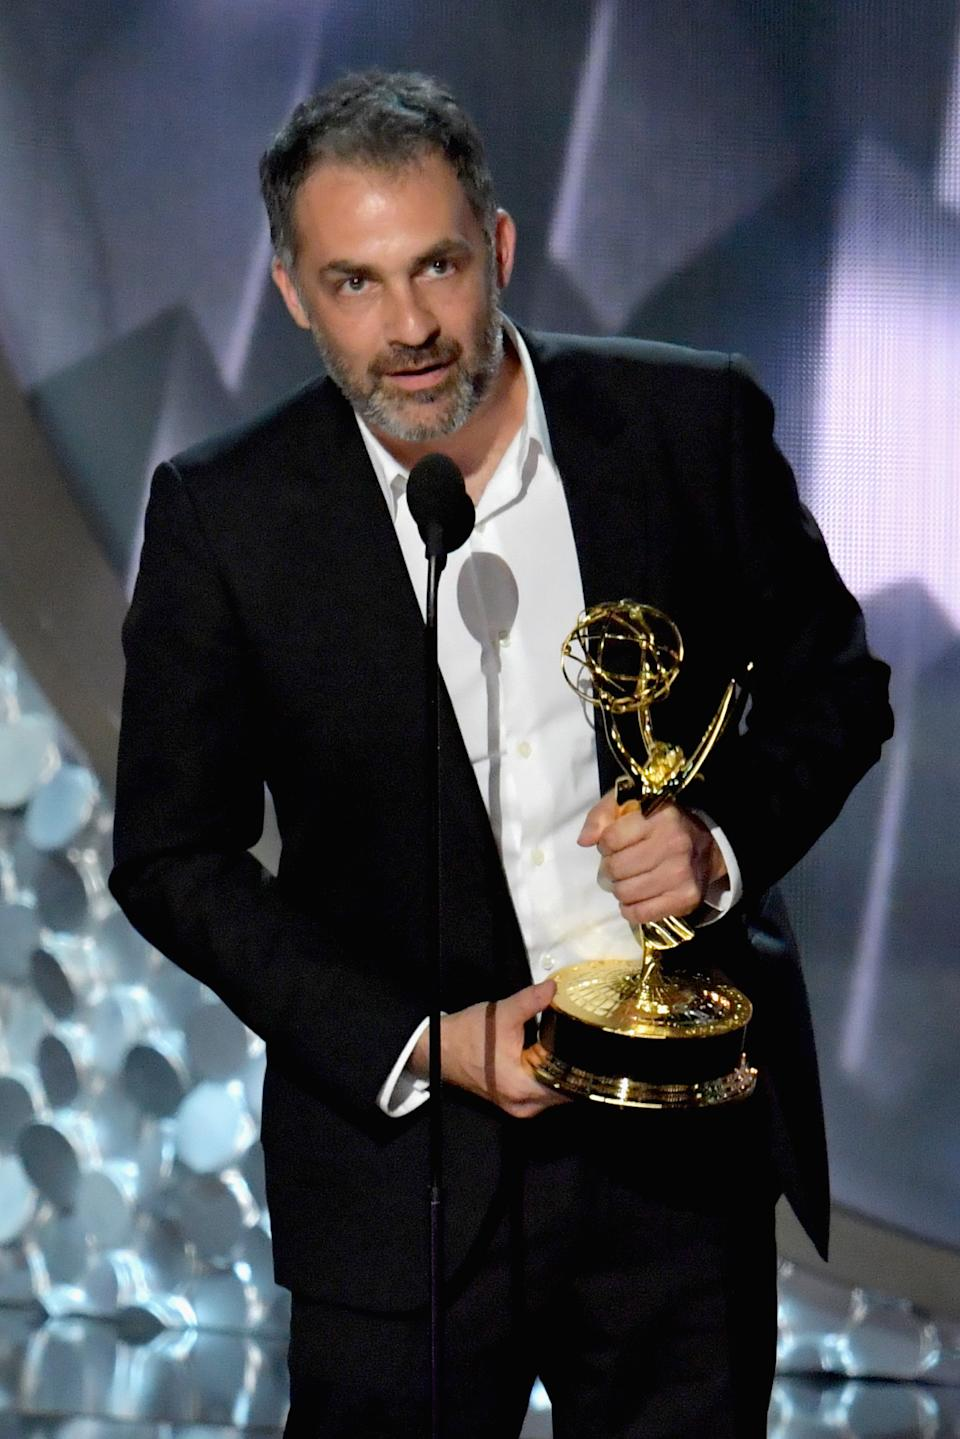 LOS ANGELES, CA - SEPTEMBER 18:  Director Miguel Sapochnik accepts the Oustanding Directing for a Drama Series award for the 'Game of Thrones' episode 'Battle of the Bastards' onstage during the 68th Annual Primetime Emmy Awards at Microsoft Theater on September 18, 2016 in Los Angeles, California.  (Photo by Lester Cohen/WireImage)